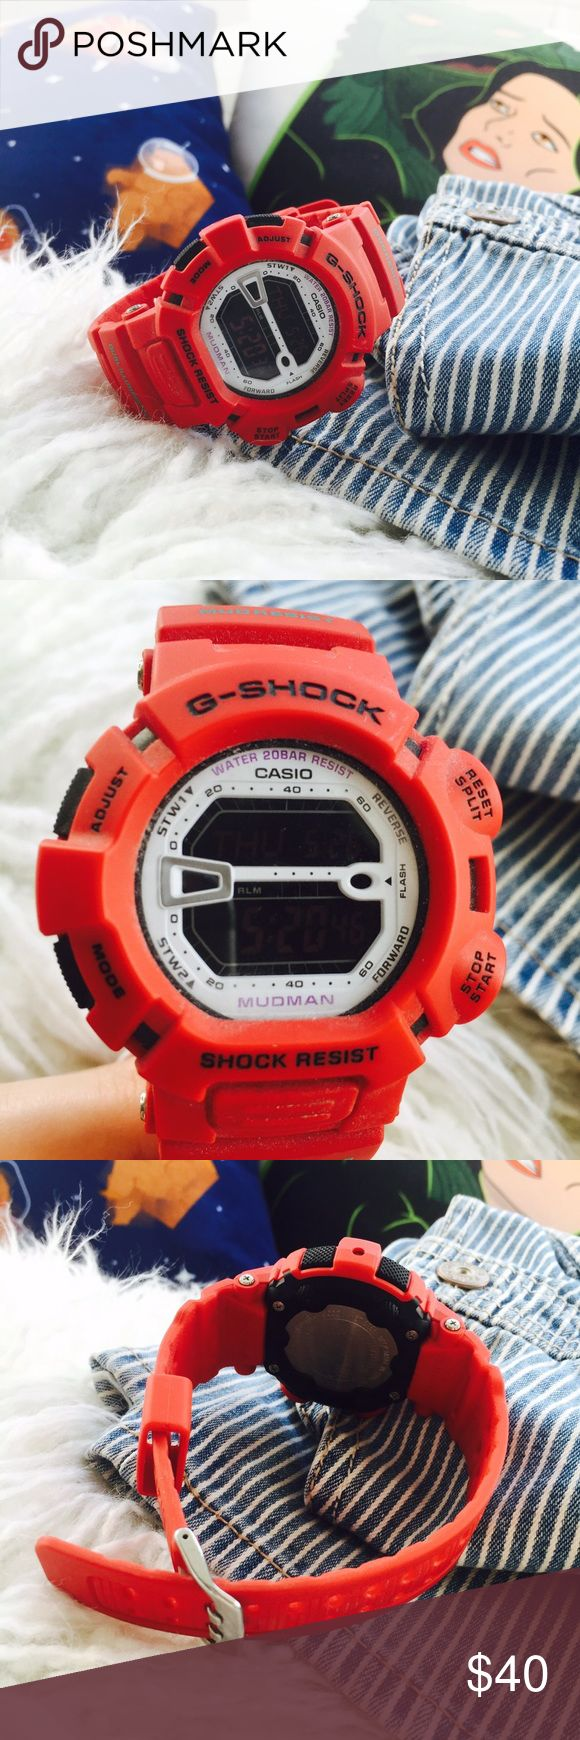 G Shock Red Mudresist Watch ❤️ worn with care, no damage at all. super cute everyday watch! ‼️NO TRADES NO PP‼️ G-Shock Accessories Watches